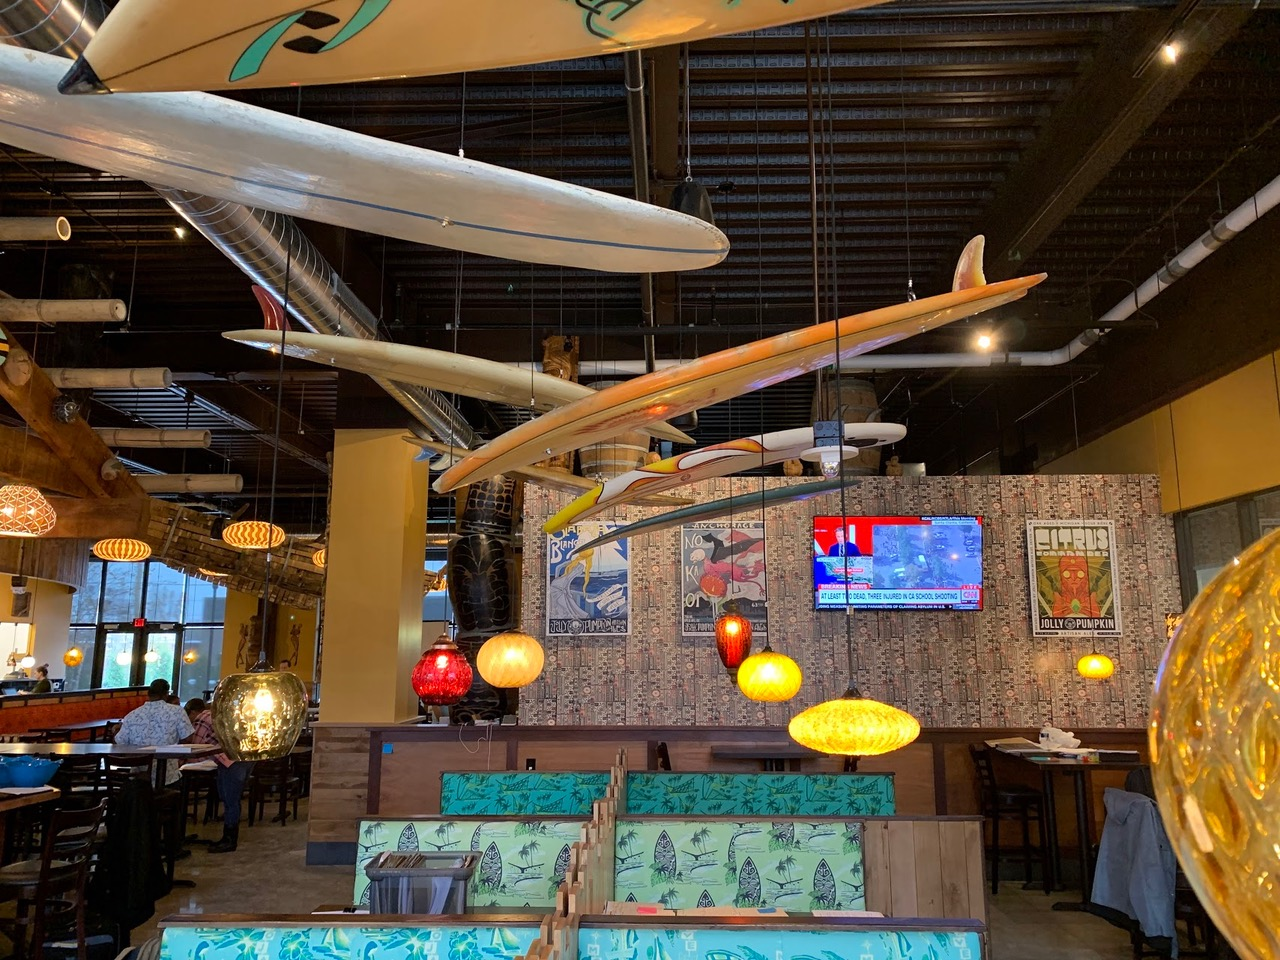 A dining room with surfboards hanging from the ceiling.